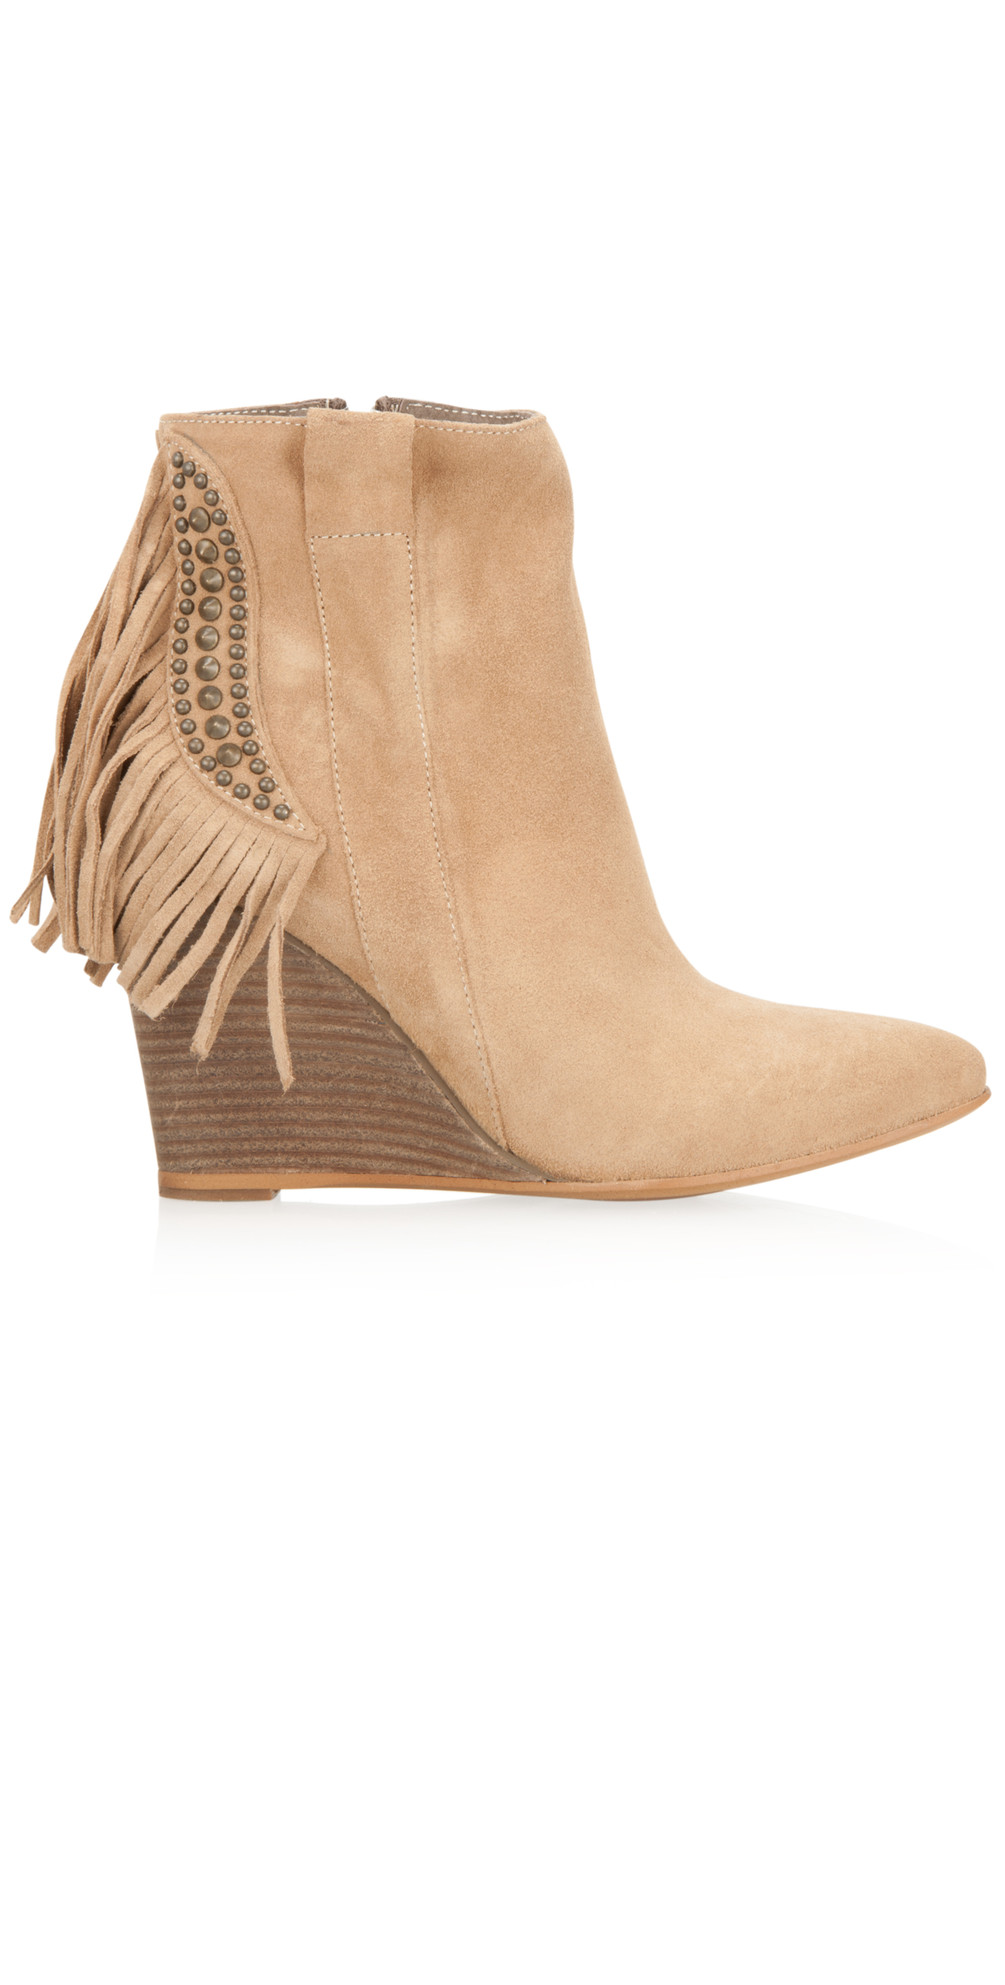 Tassel Wedge Ankle Boot main image